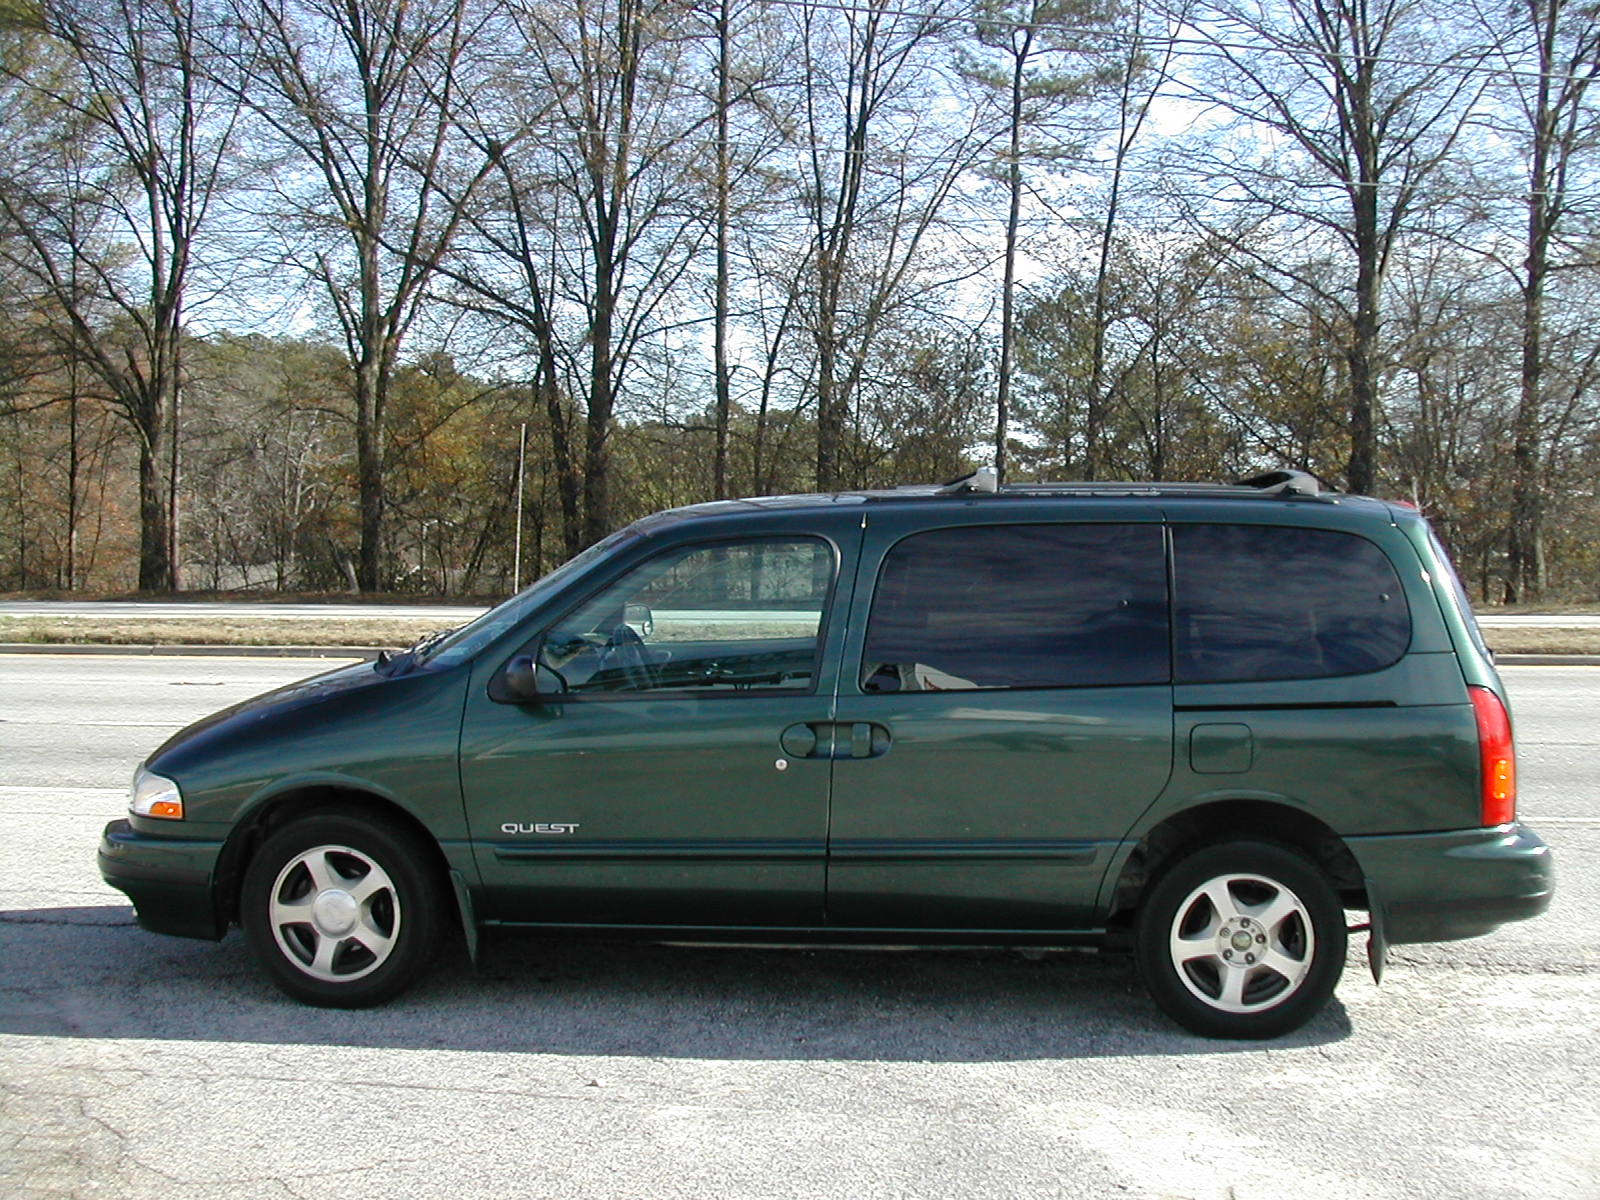 1999 nissan quest photos informations articles bestcarmag com 1999 nissan quest photos informations